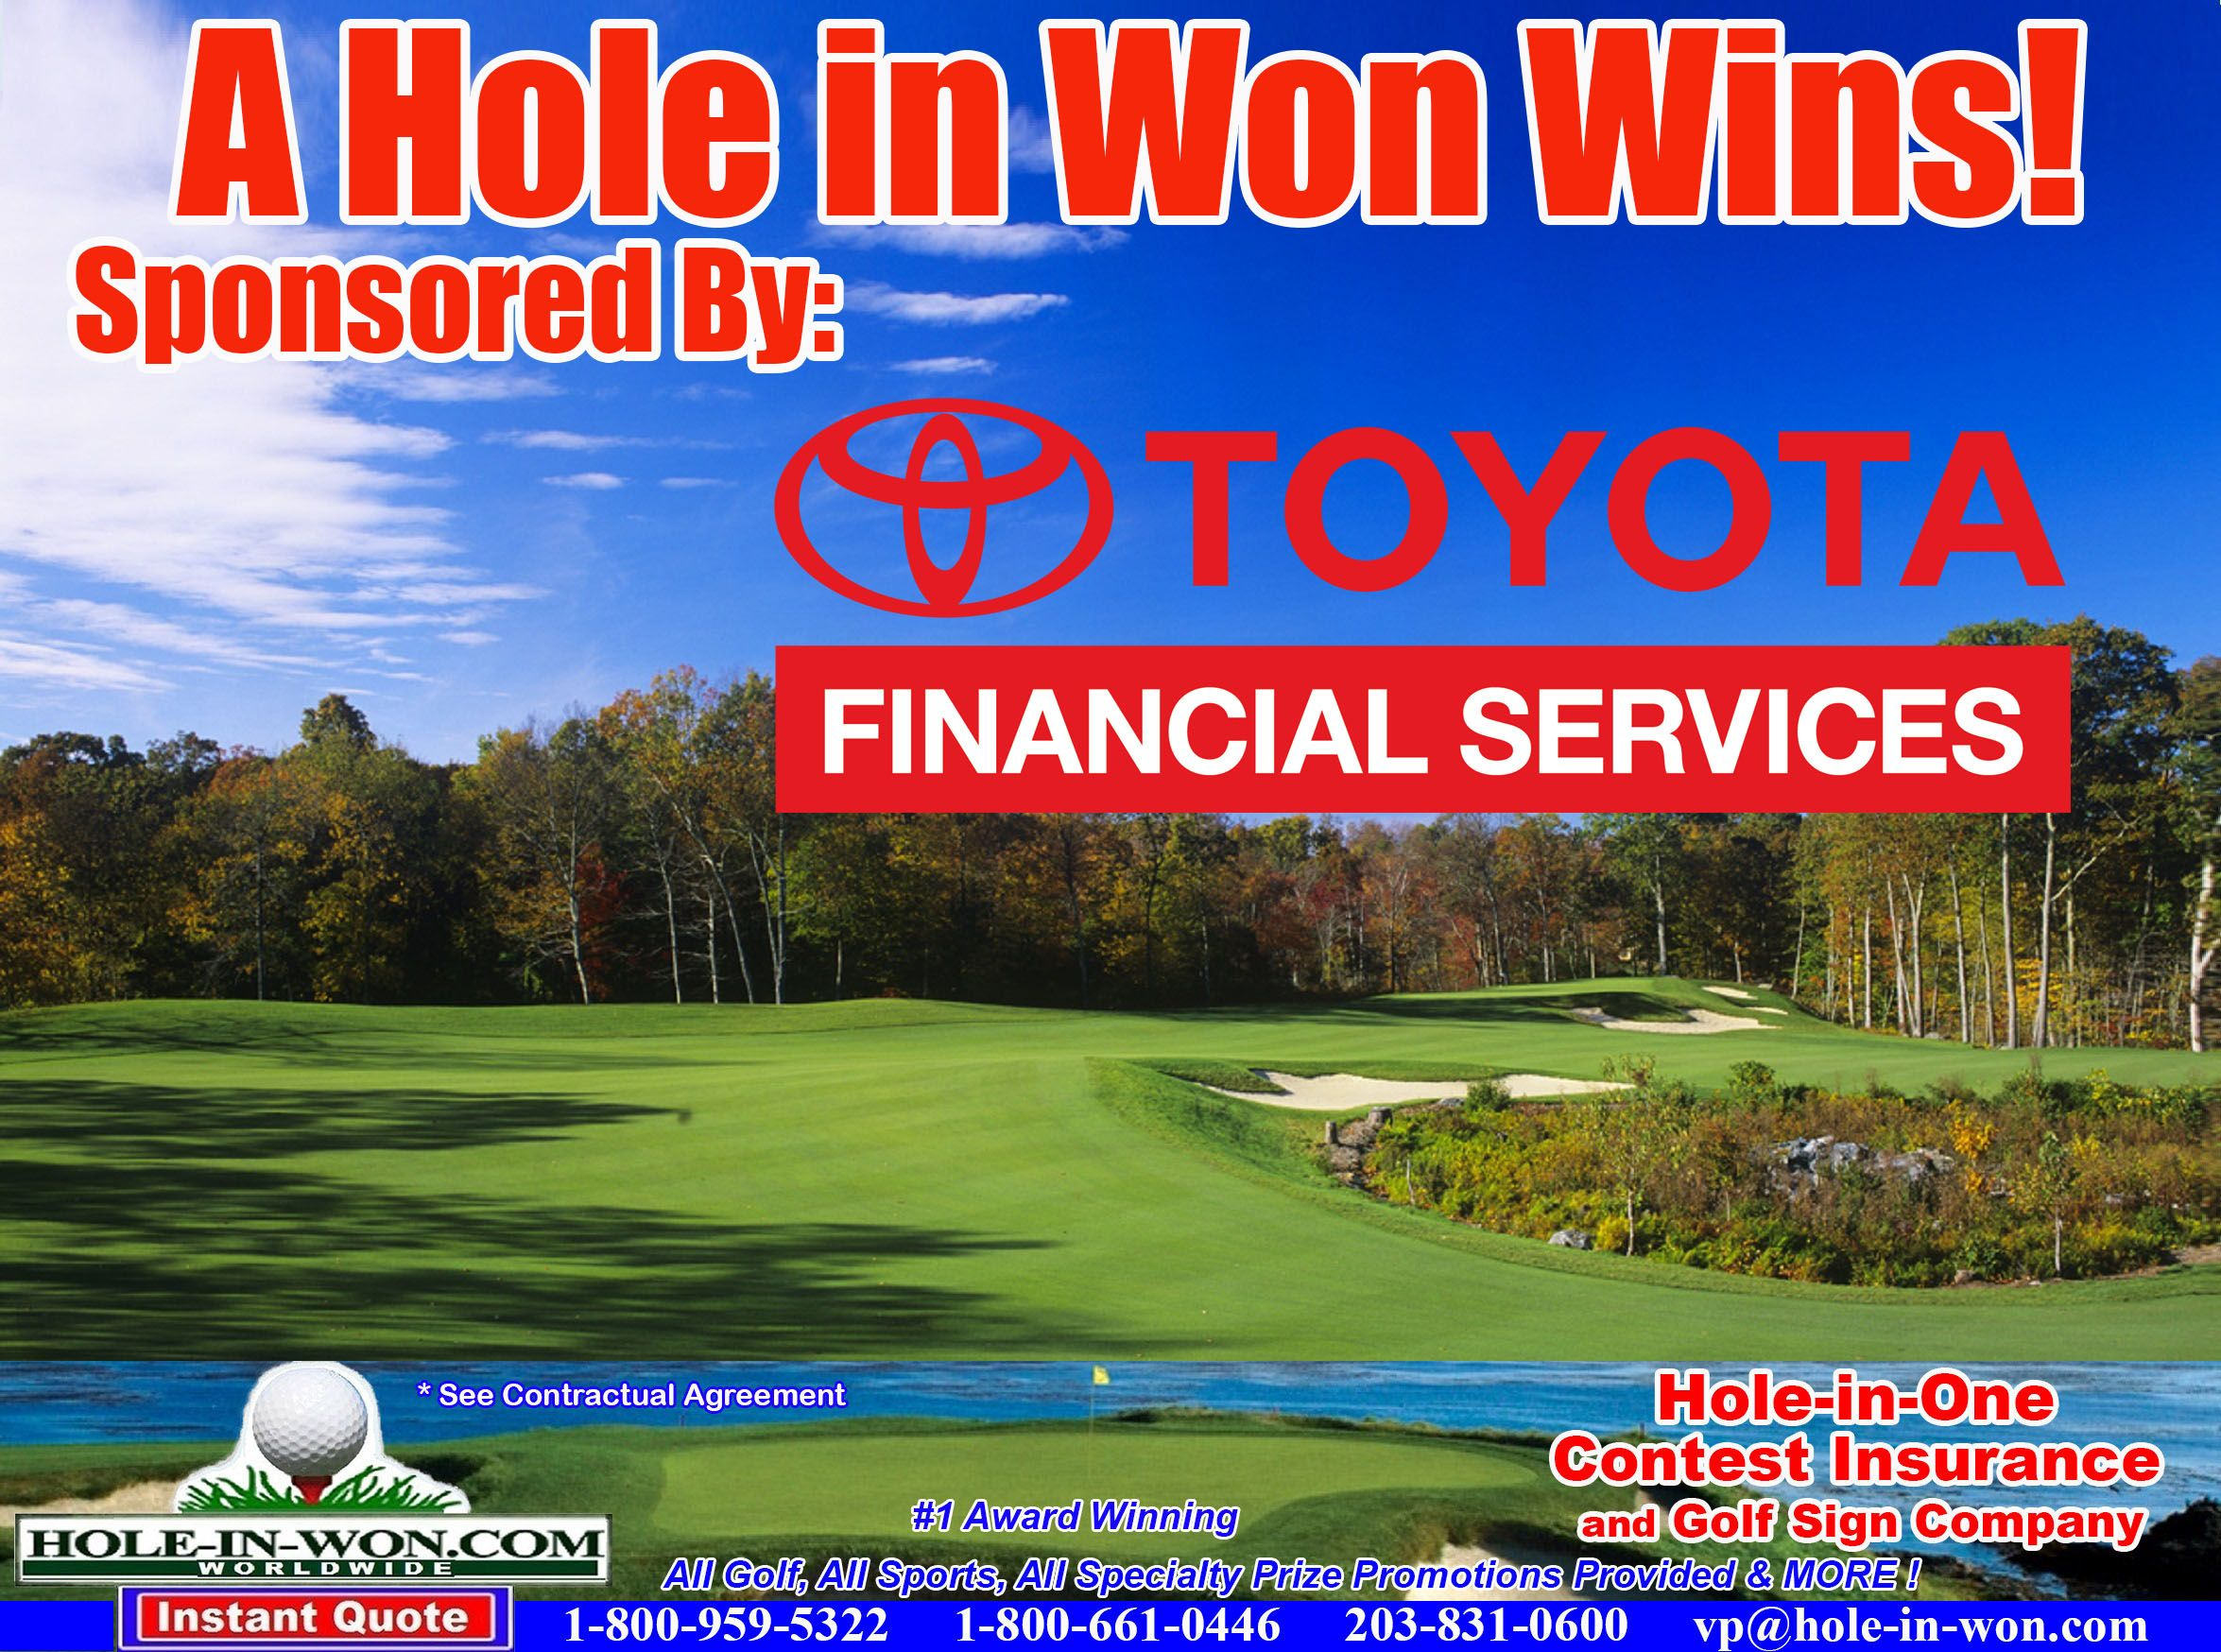 Toyota Hole In One Insurance All Golf Promotions All Sports All